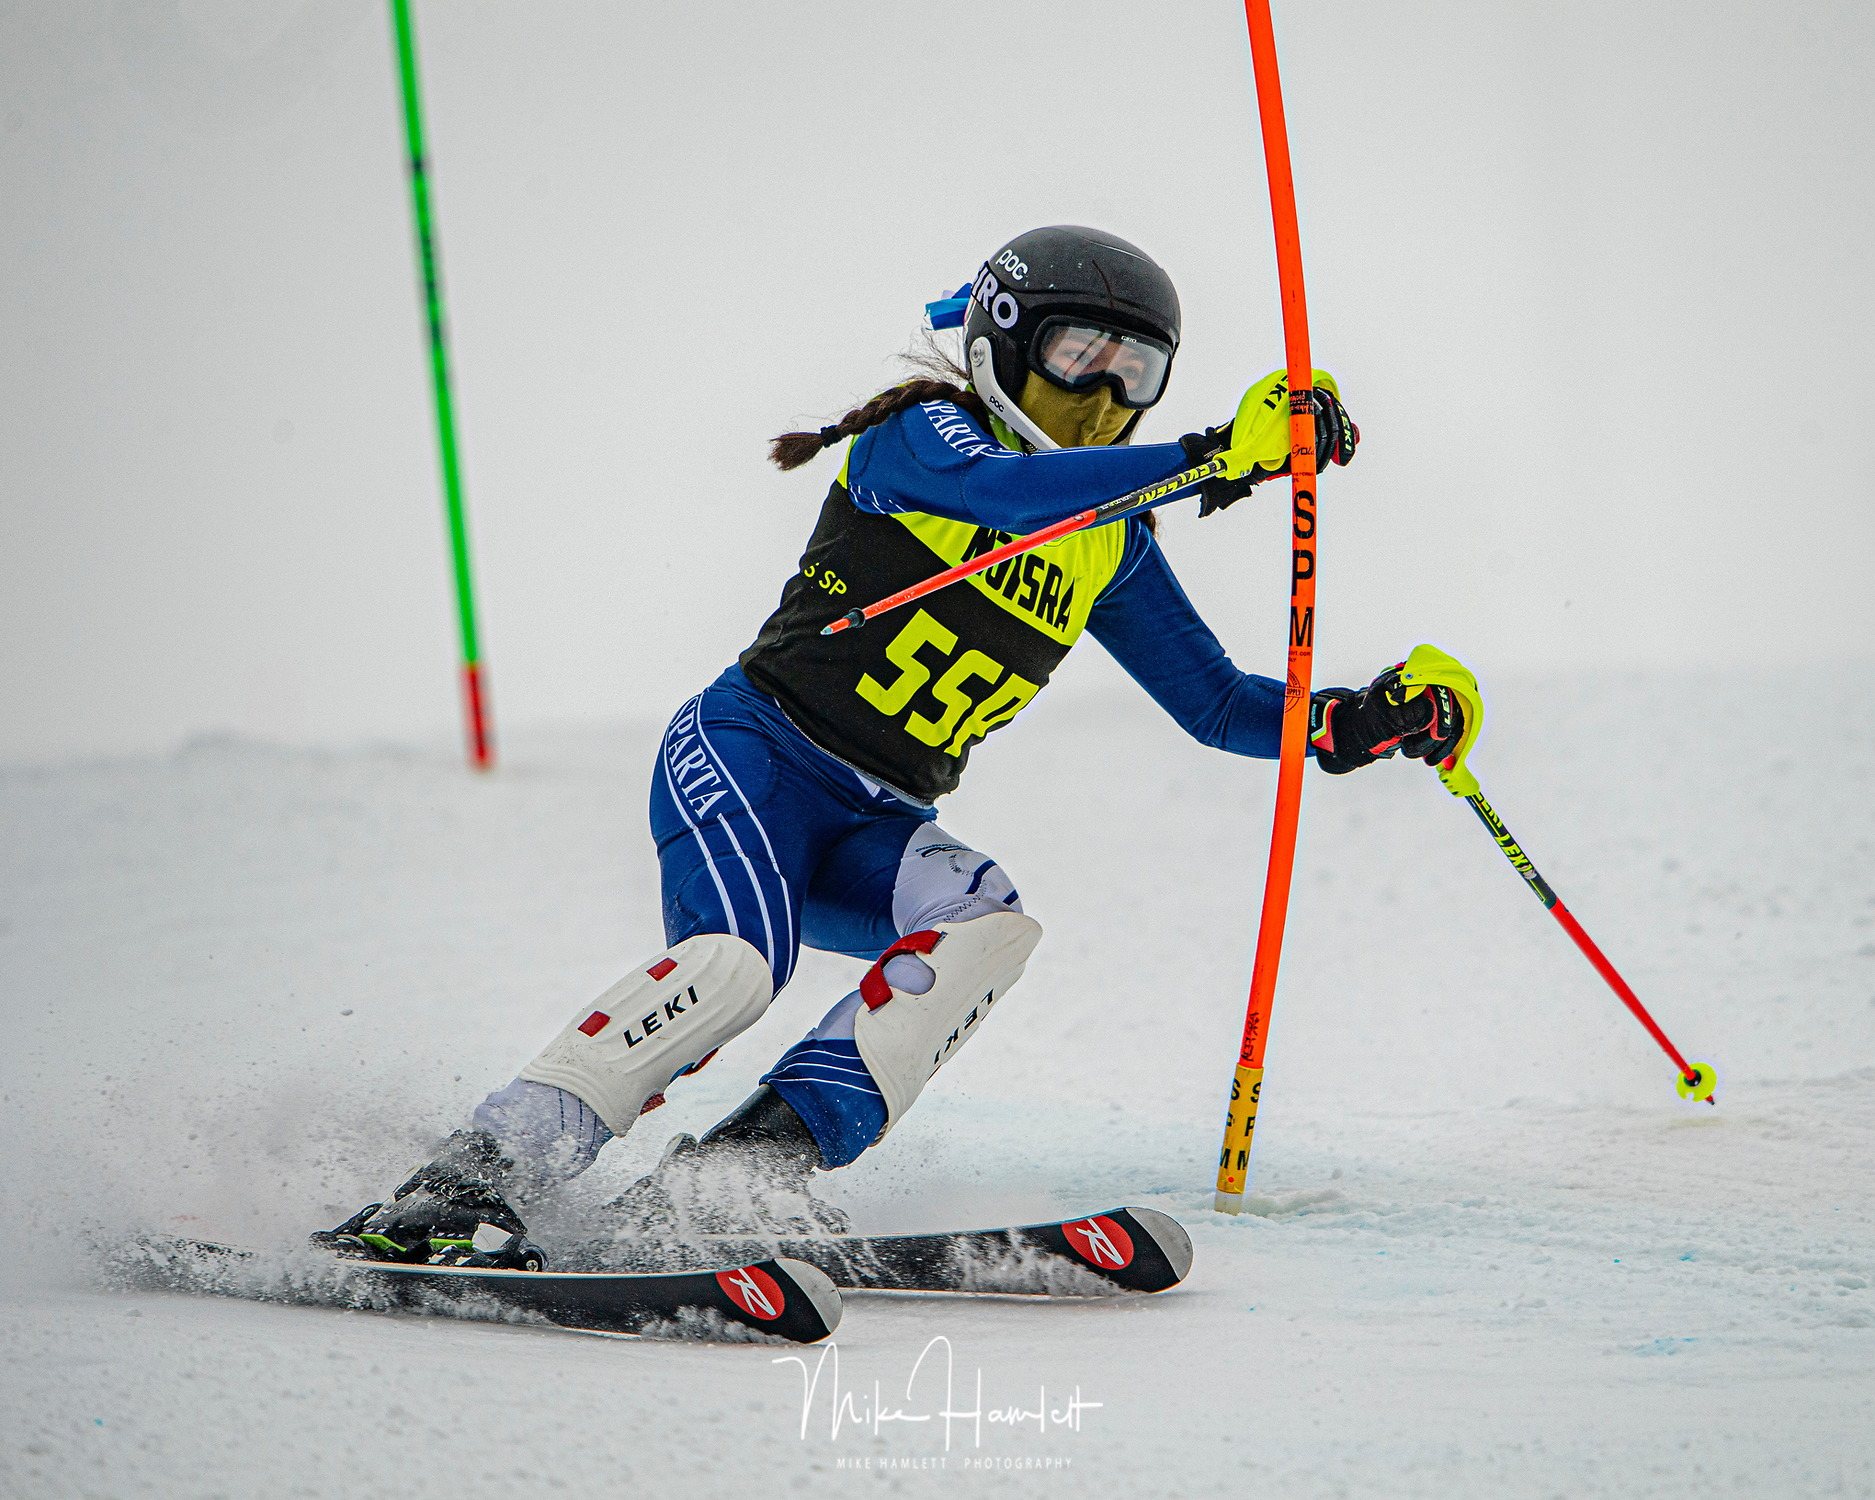 Rachel Young - Slalom States | Photo Credit: Mike Hamlett